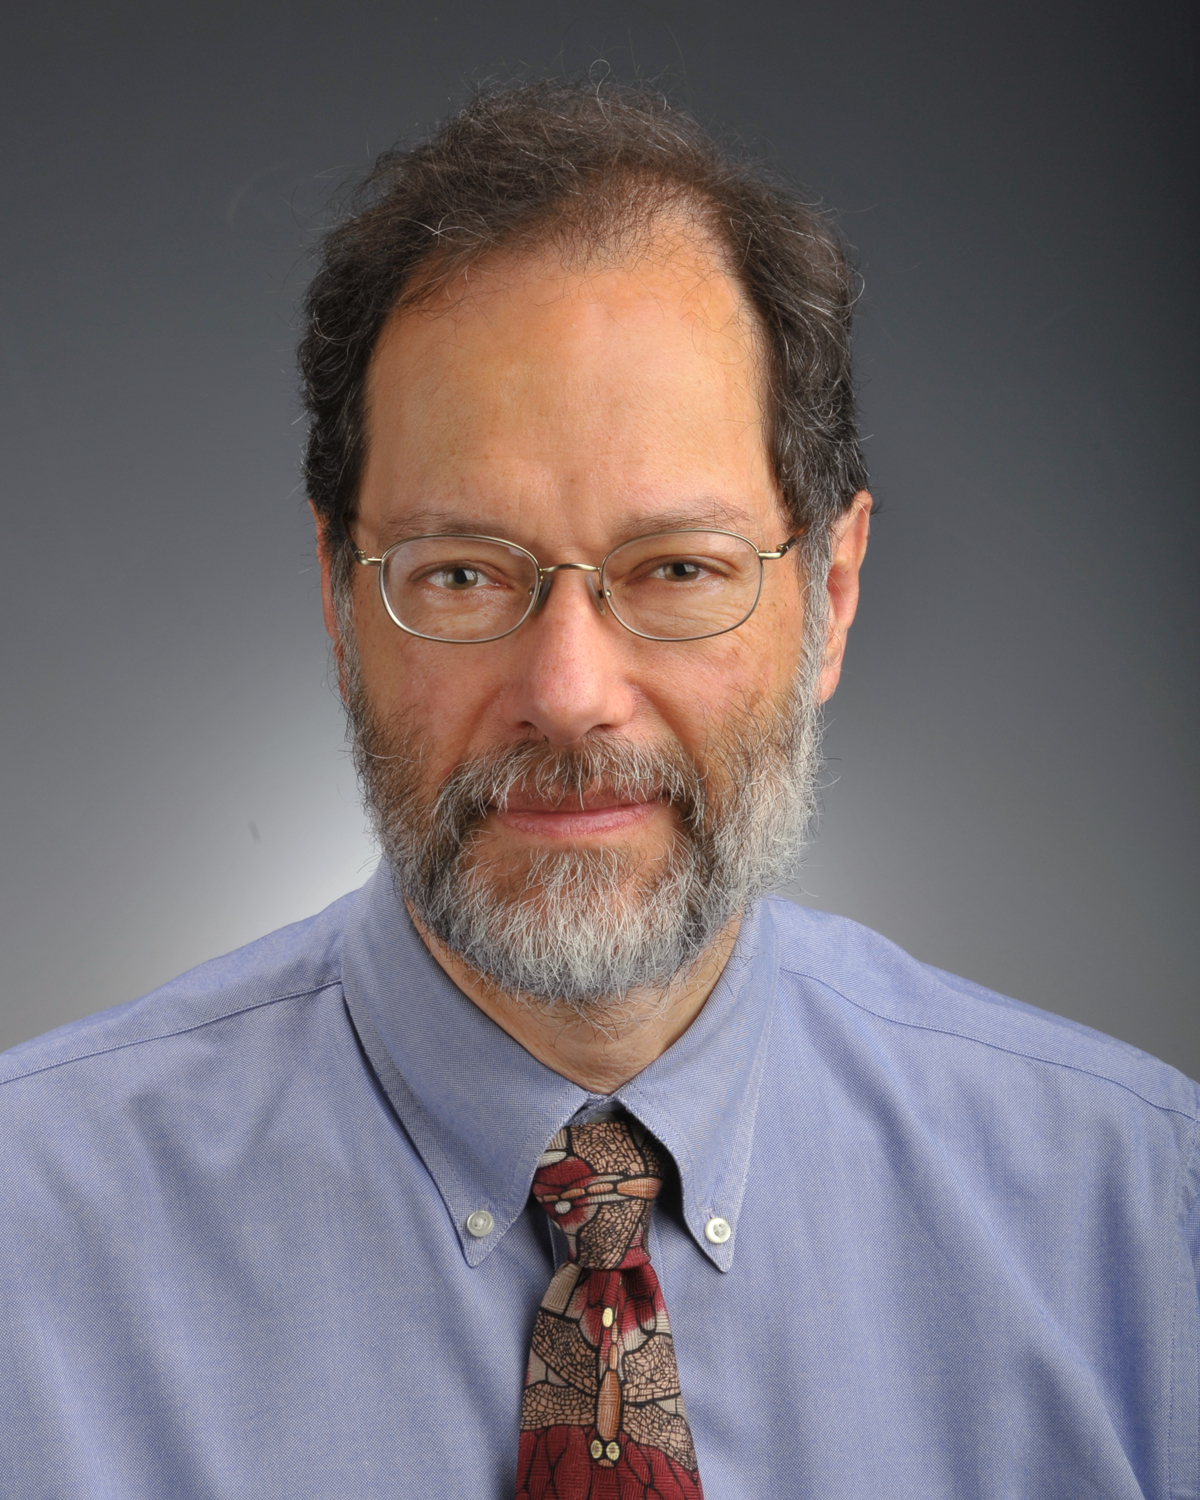 Matthew Goetz, MD